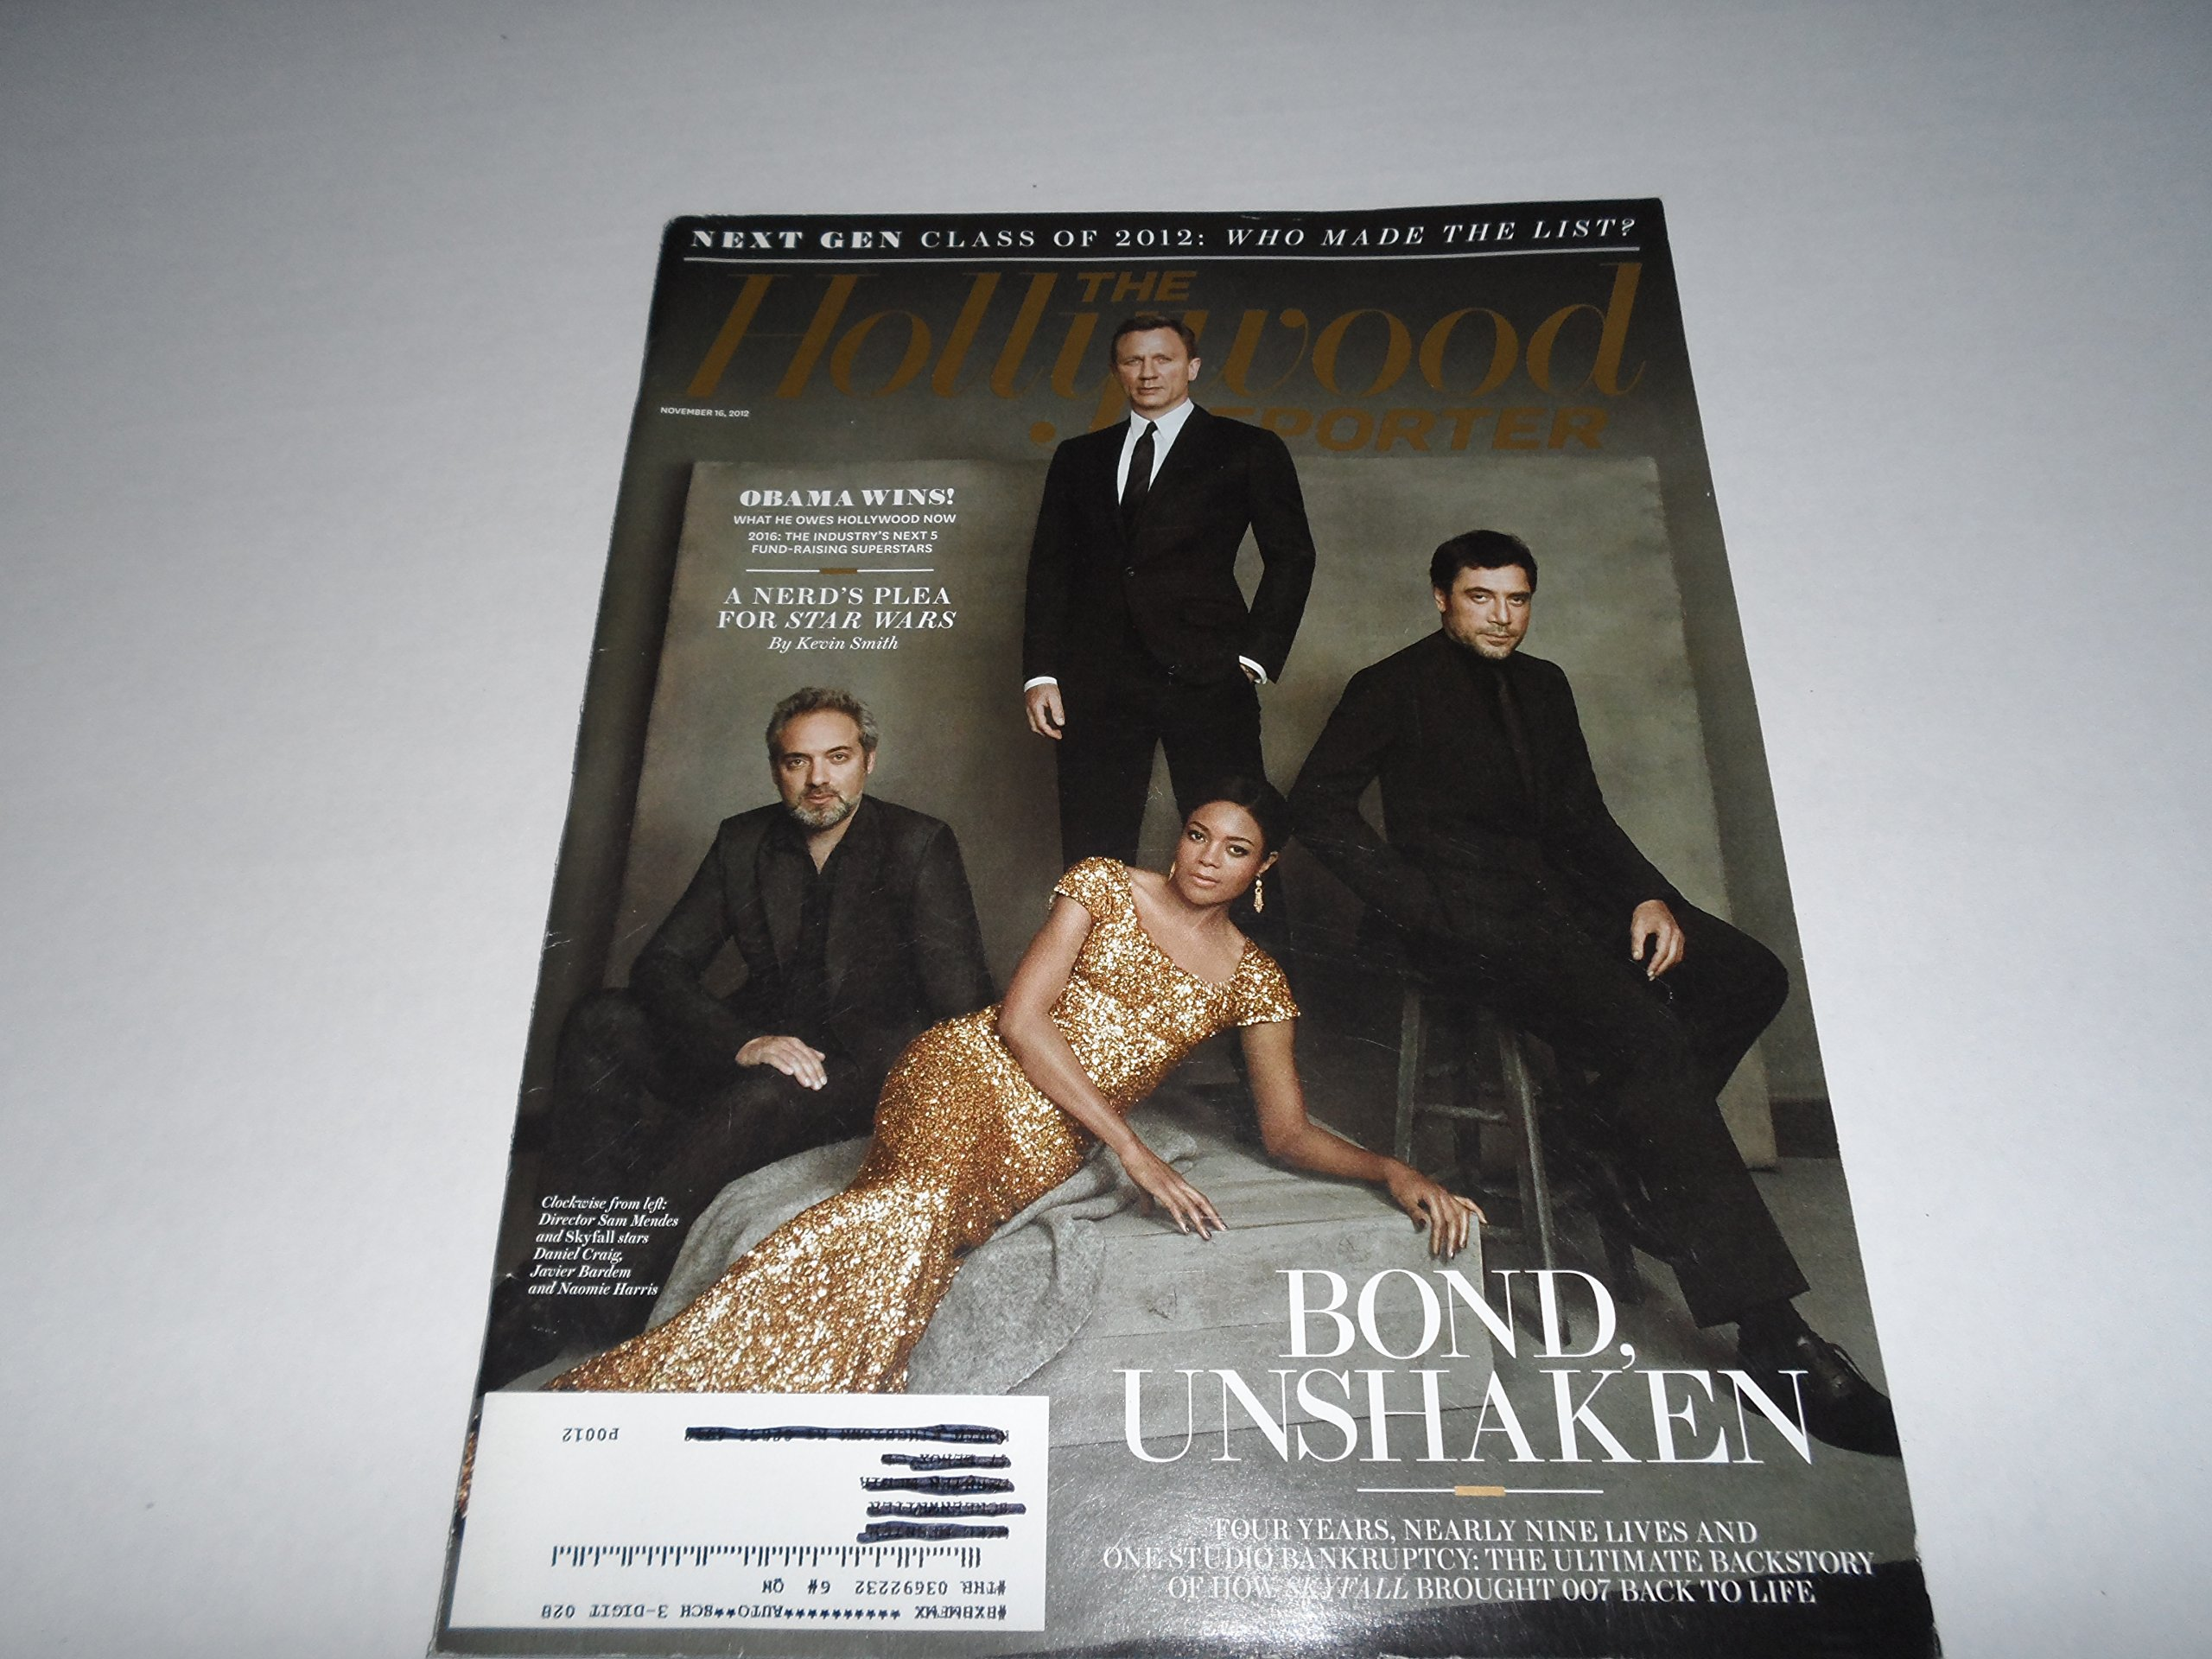 Read Online The Hollywood Reporter (Nov 16, 2012) Bond Unshaken - Daniel Craig; Skyfall, etc pdf